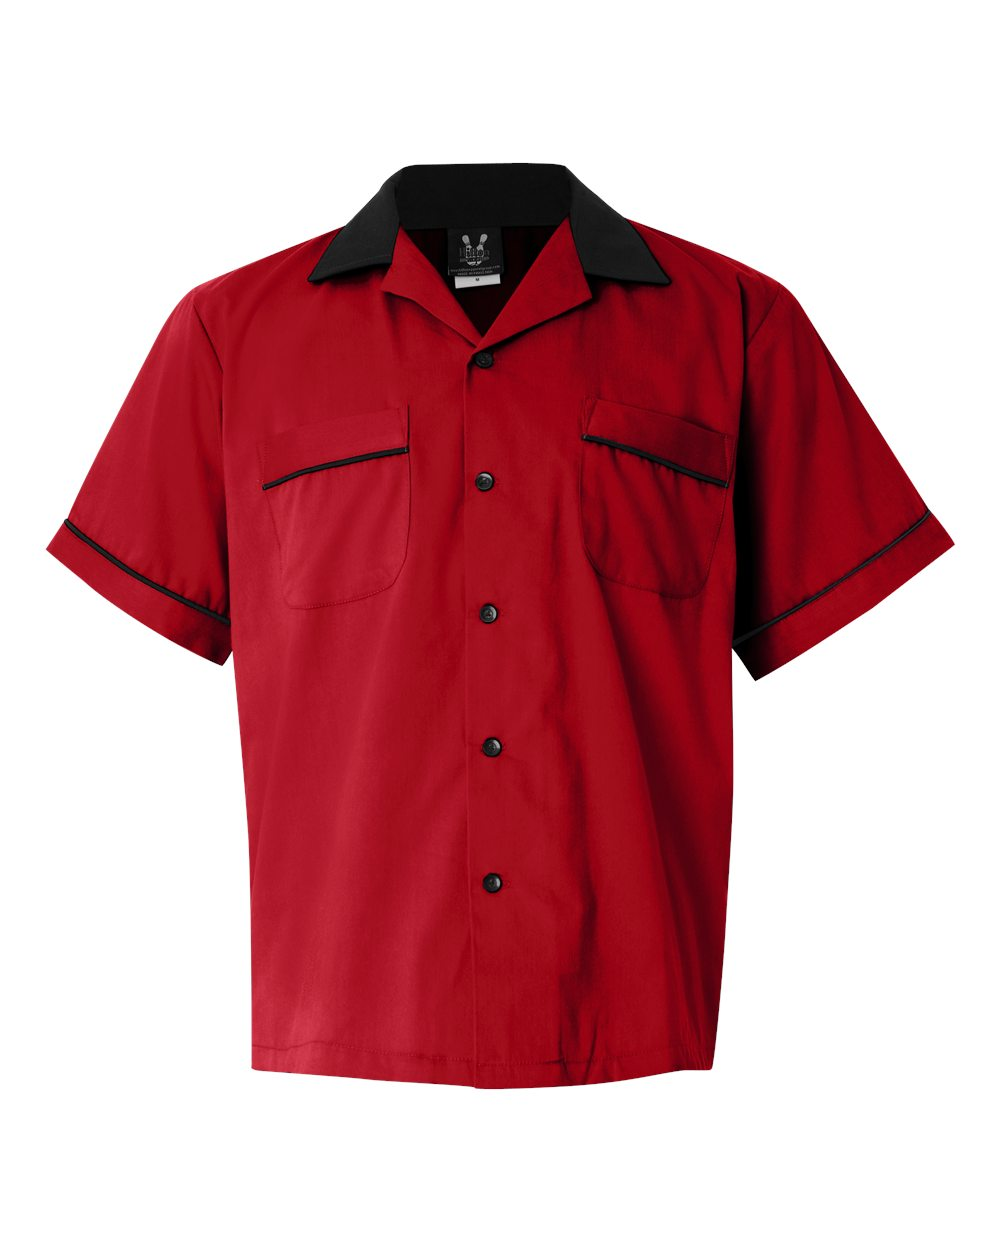 1950s Mens Shirts | Retro Bowling Shirts, Vintage Hawaiian Shirts Classic Bowler 2.0 Bowling Shirt - Red  Black $39.95 AT vintagedancer.com